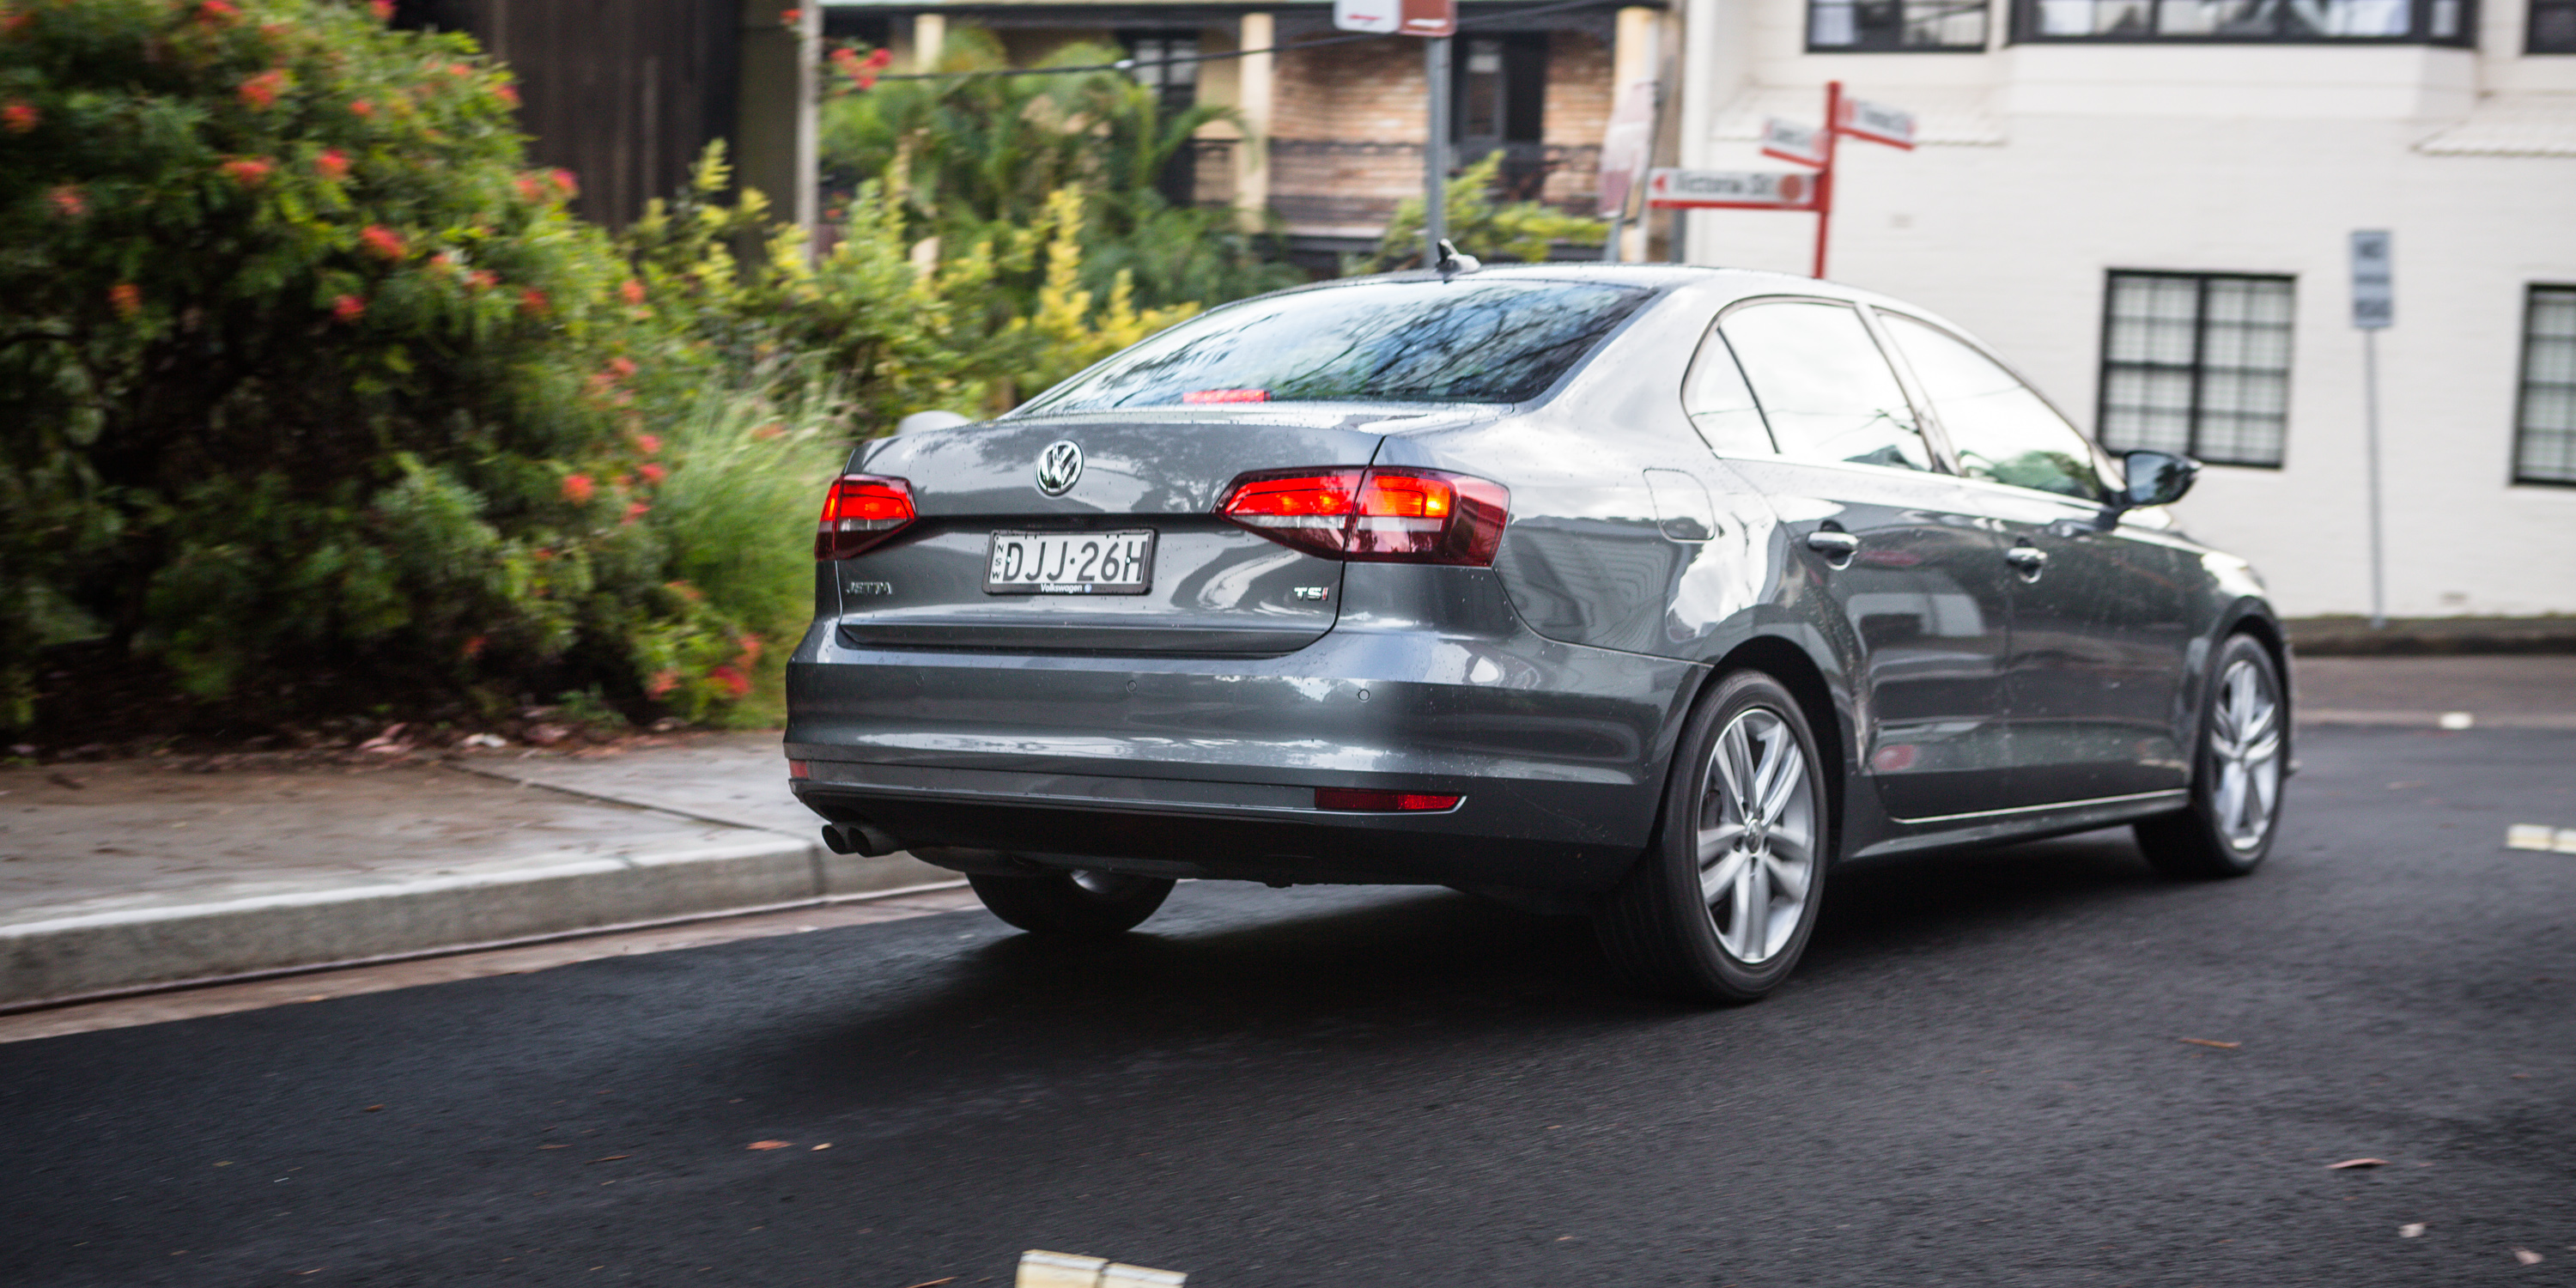 Volkswagen Jetta photo 180375